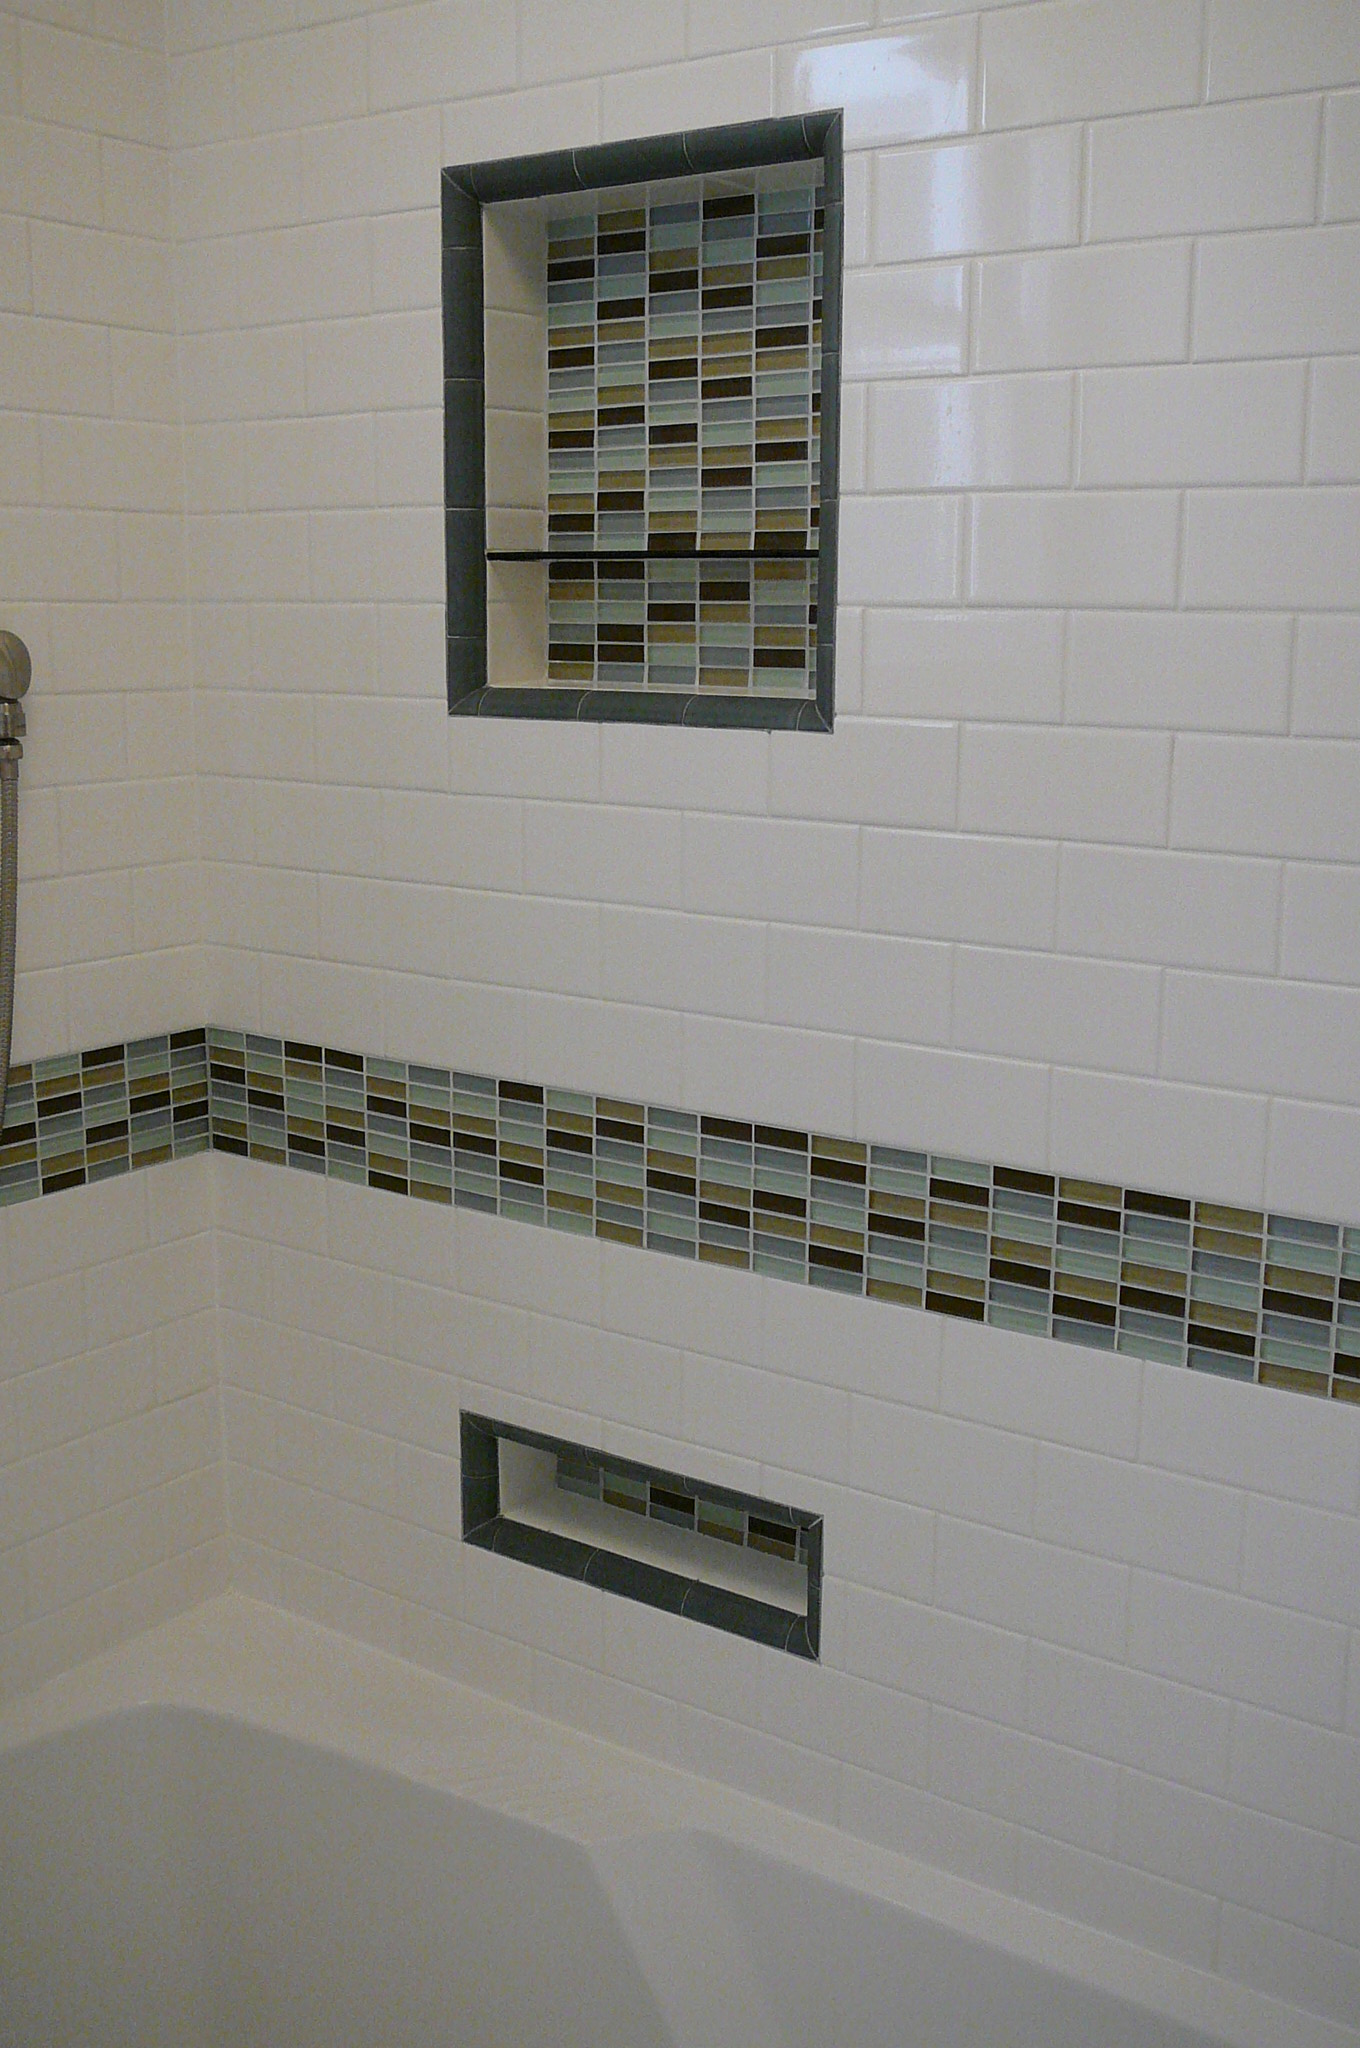 bathroom-glass-tile-accent-ideas-bathroom-ideas-2ckuisew